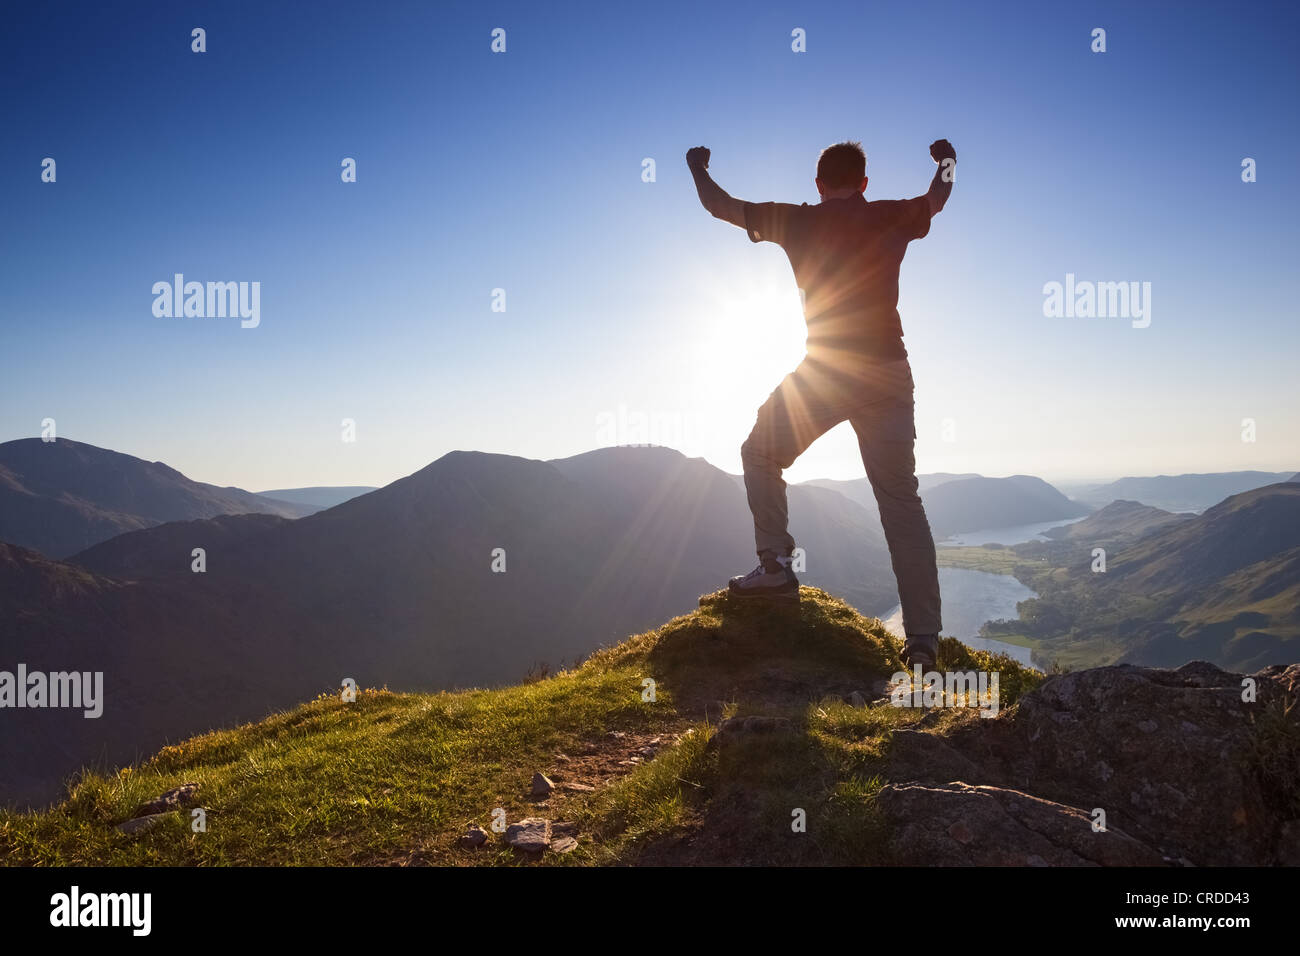 Man celebrating with his arms stretched in the air on the summit of a mountain. - Stock Image